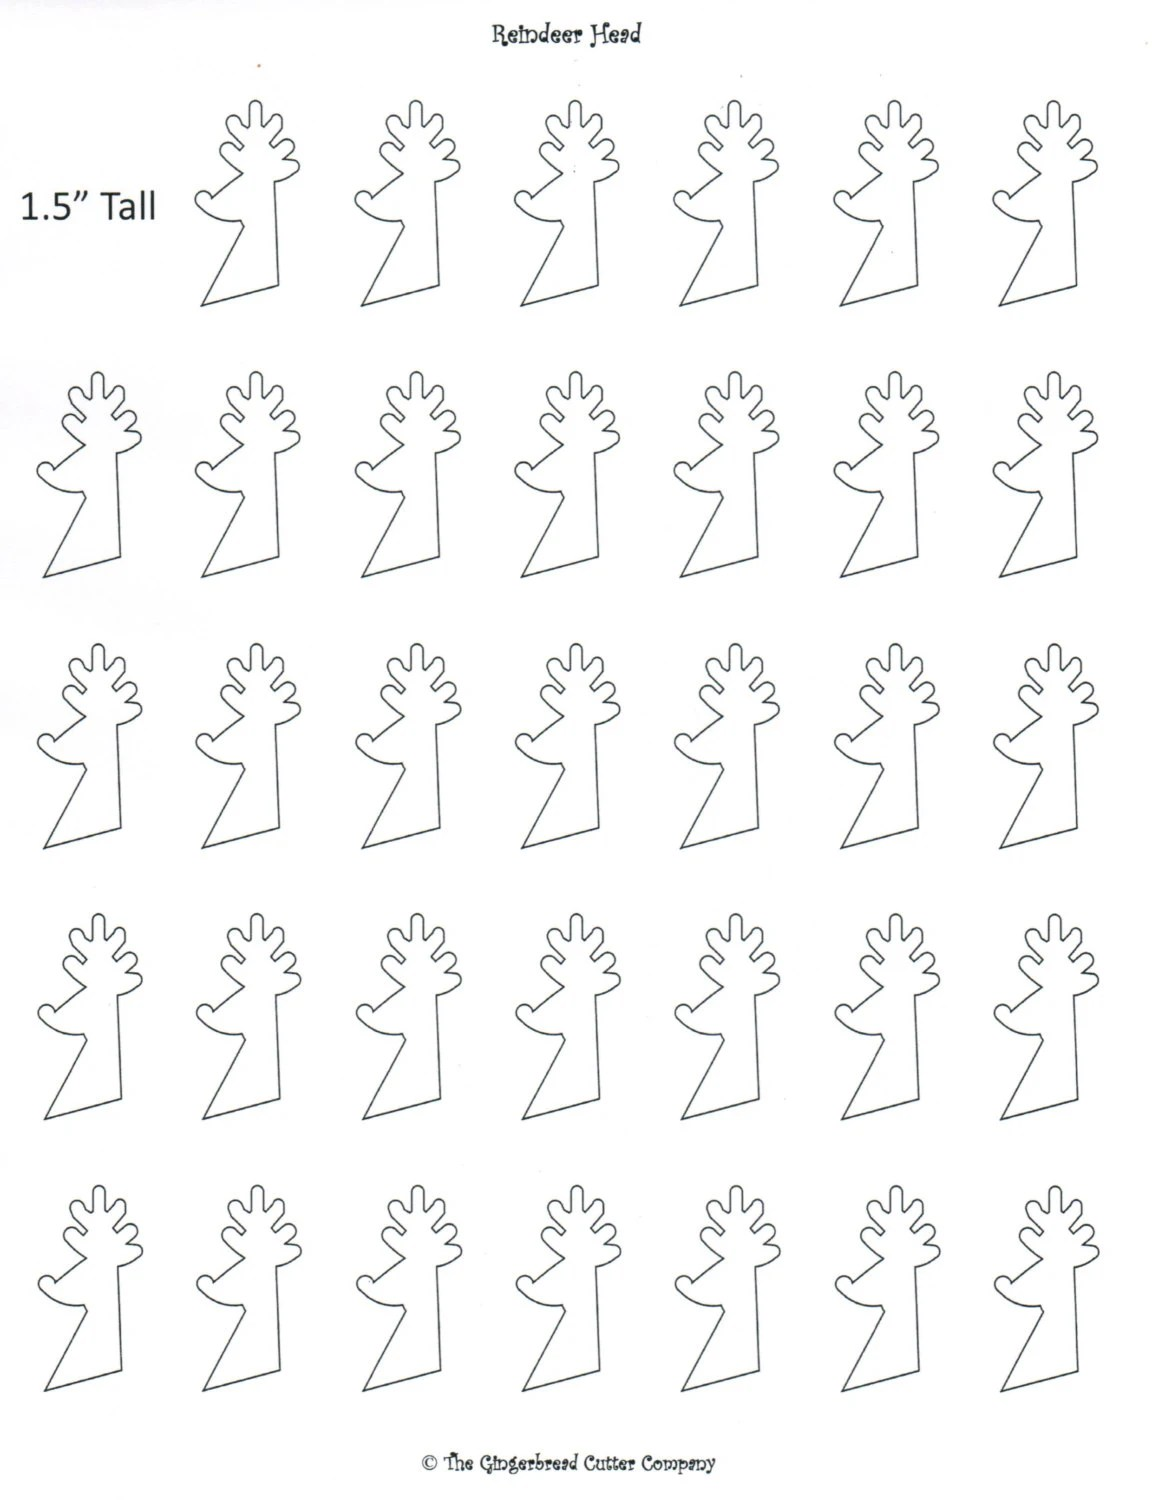 Reindeer Head Royal Icing Transfer Template from